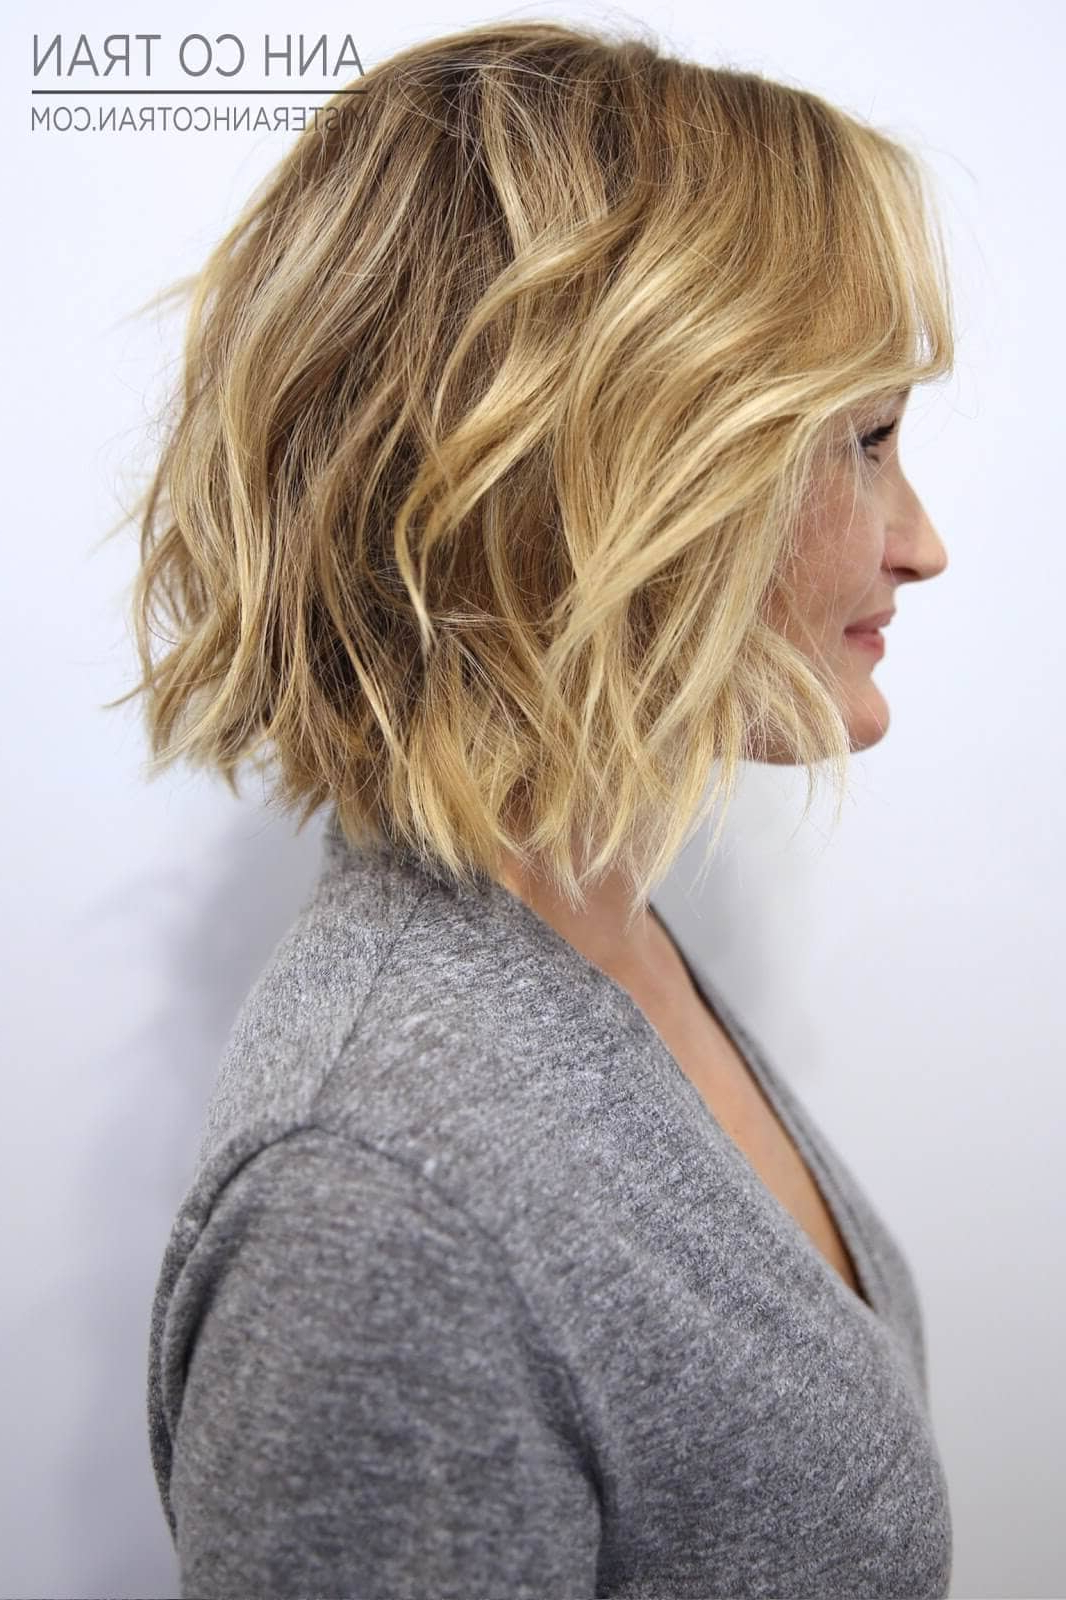 50 Ways To Wear Short Hair With Bangs For A Fresh New Look In Silver Balayage Bob Haircuts With Swoopy Layers (View 8 of 20)